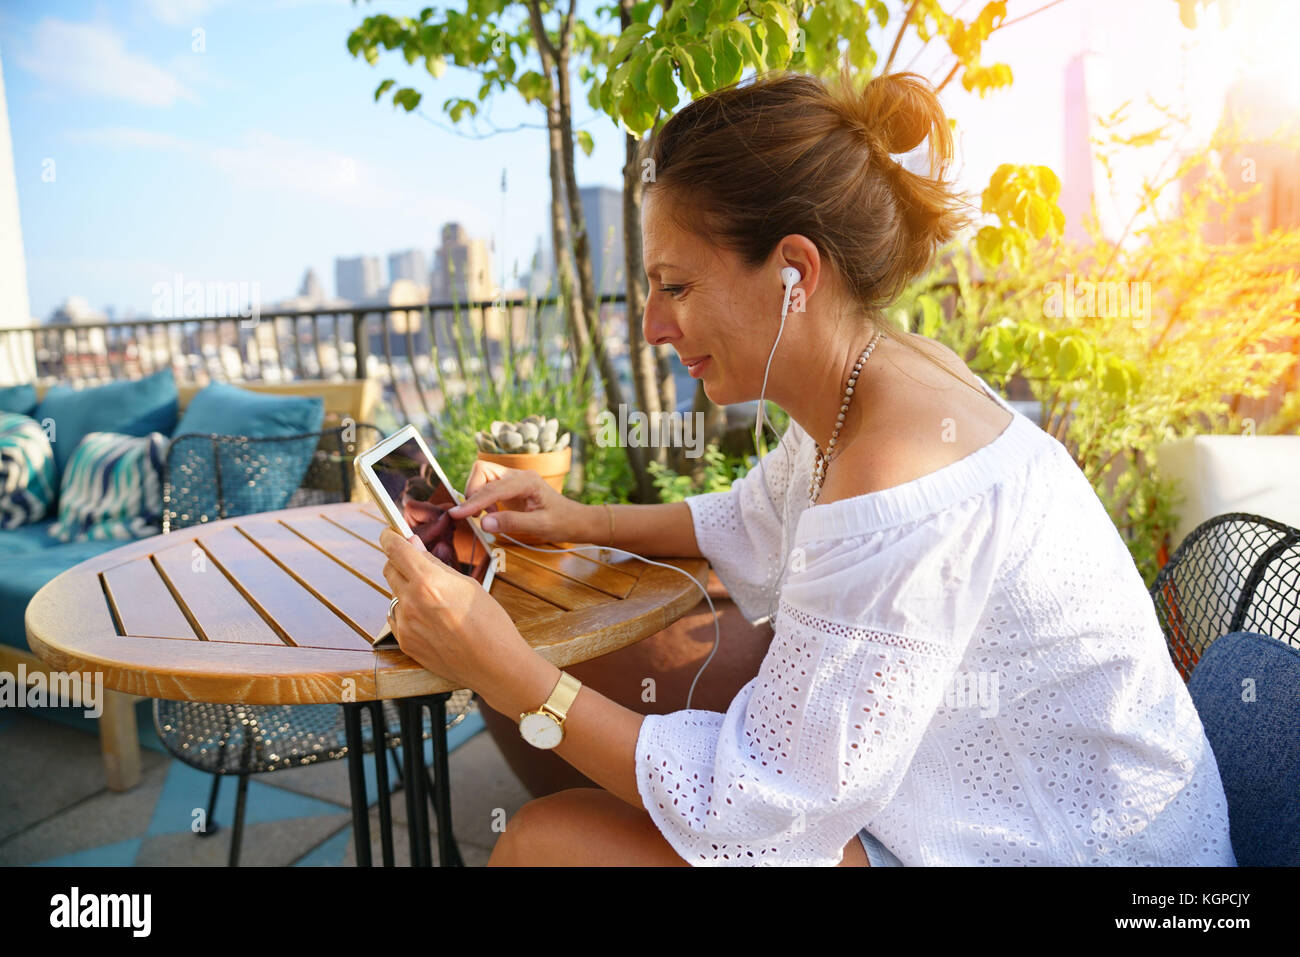 Woman connected with digital tablet having a conversation - Stock Image